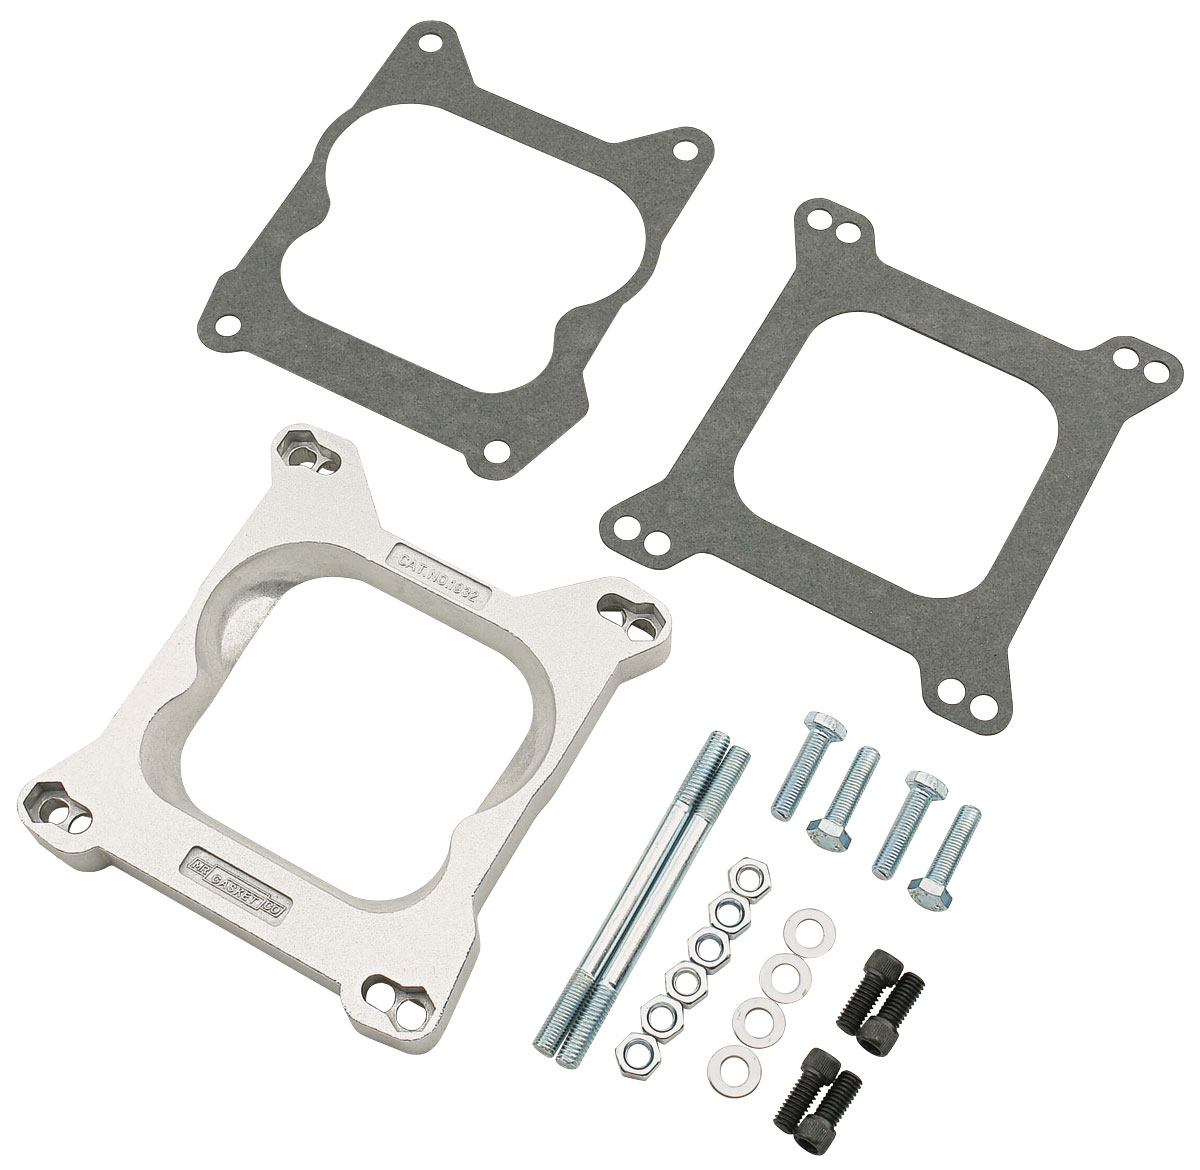 Carburetor Adapter Kit, Open Center, Square Flange to Q-Jet